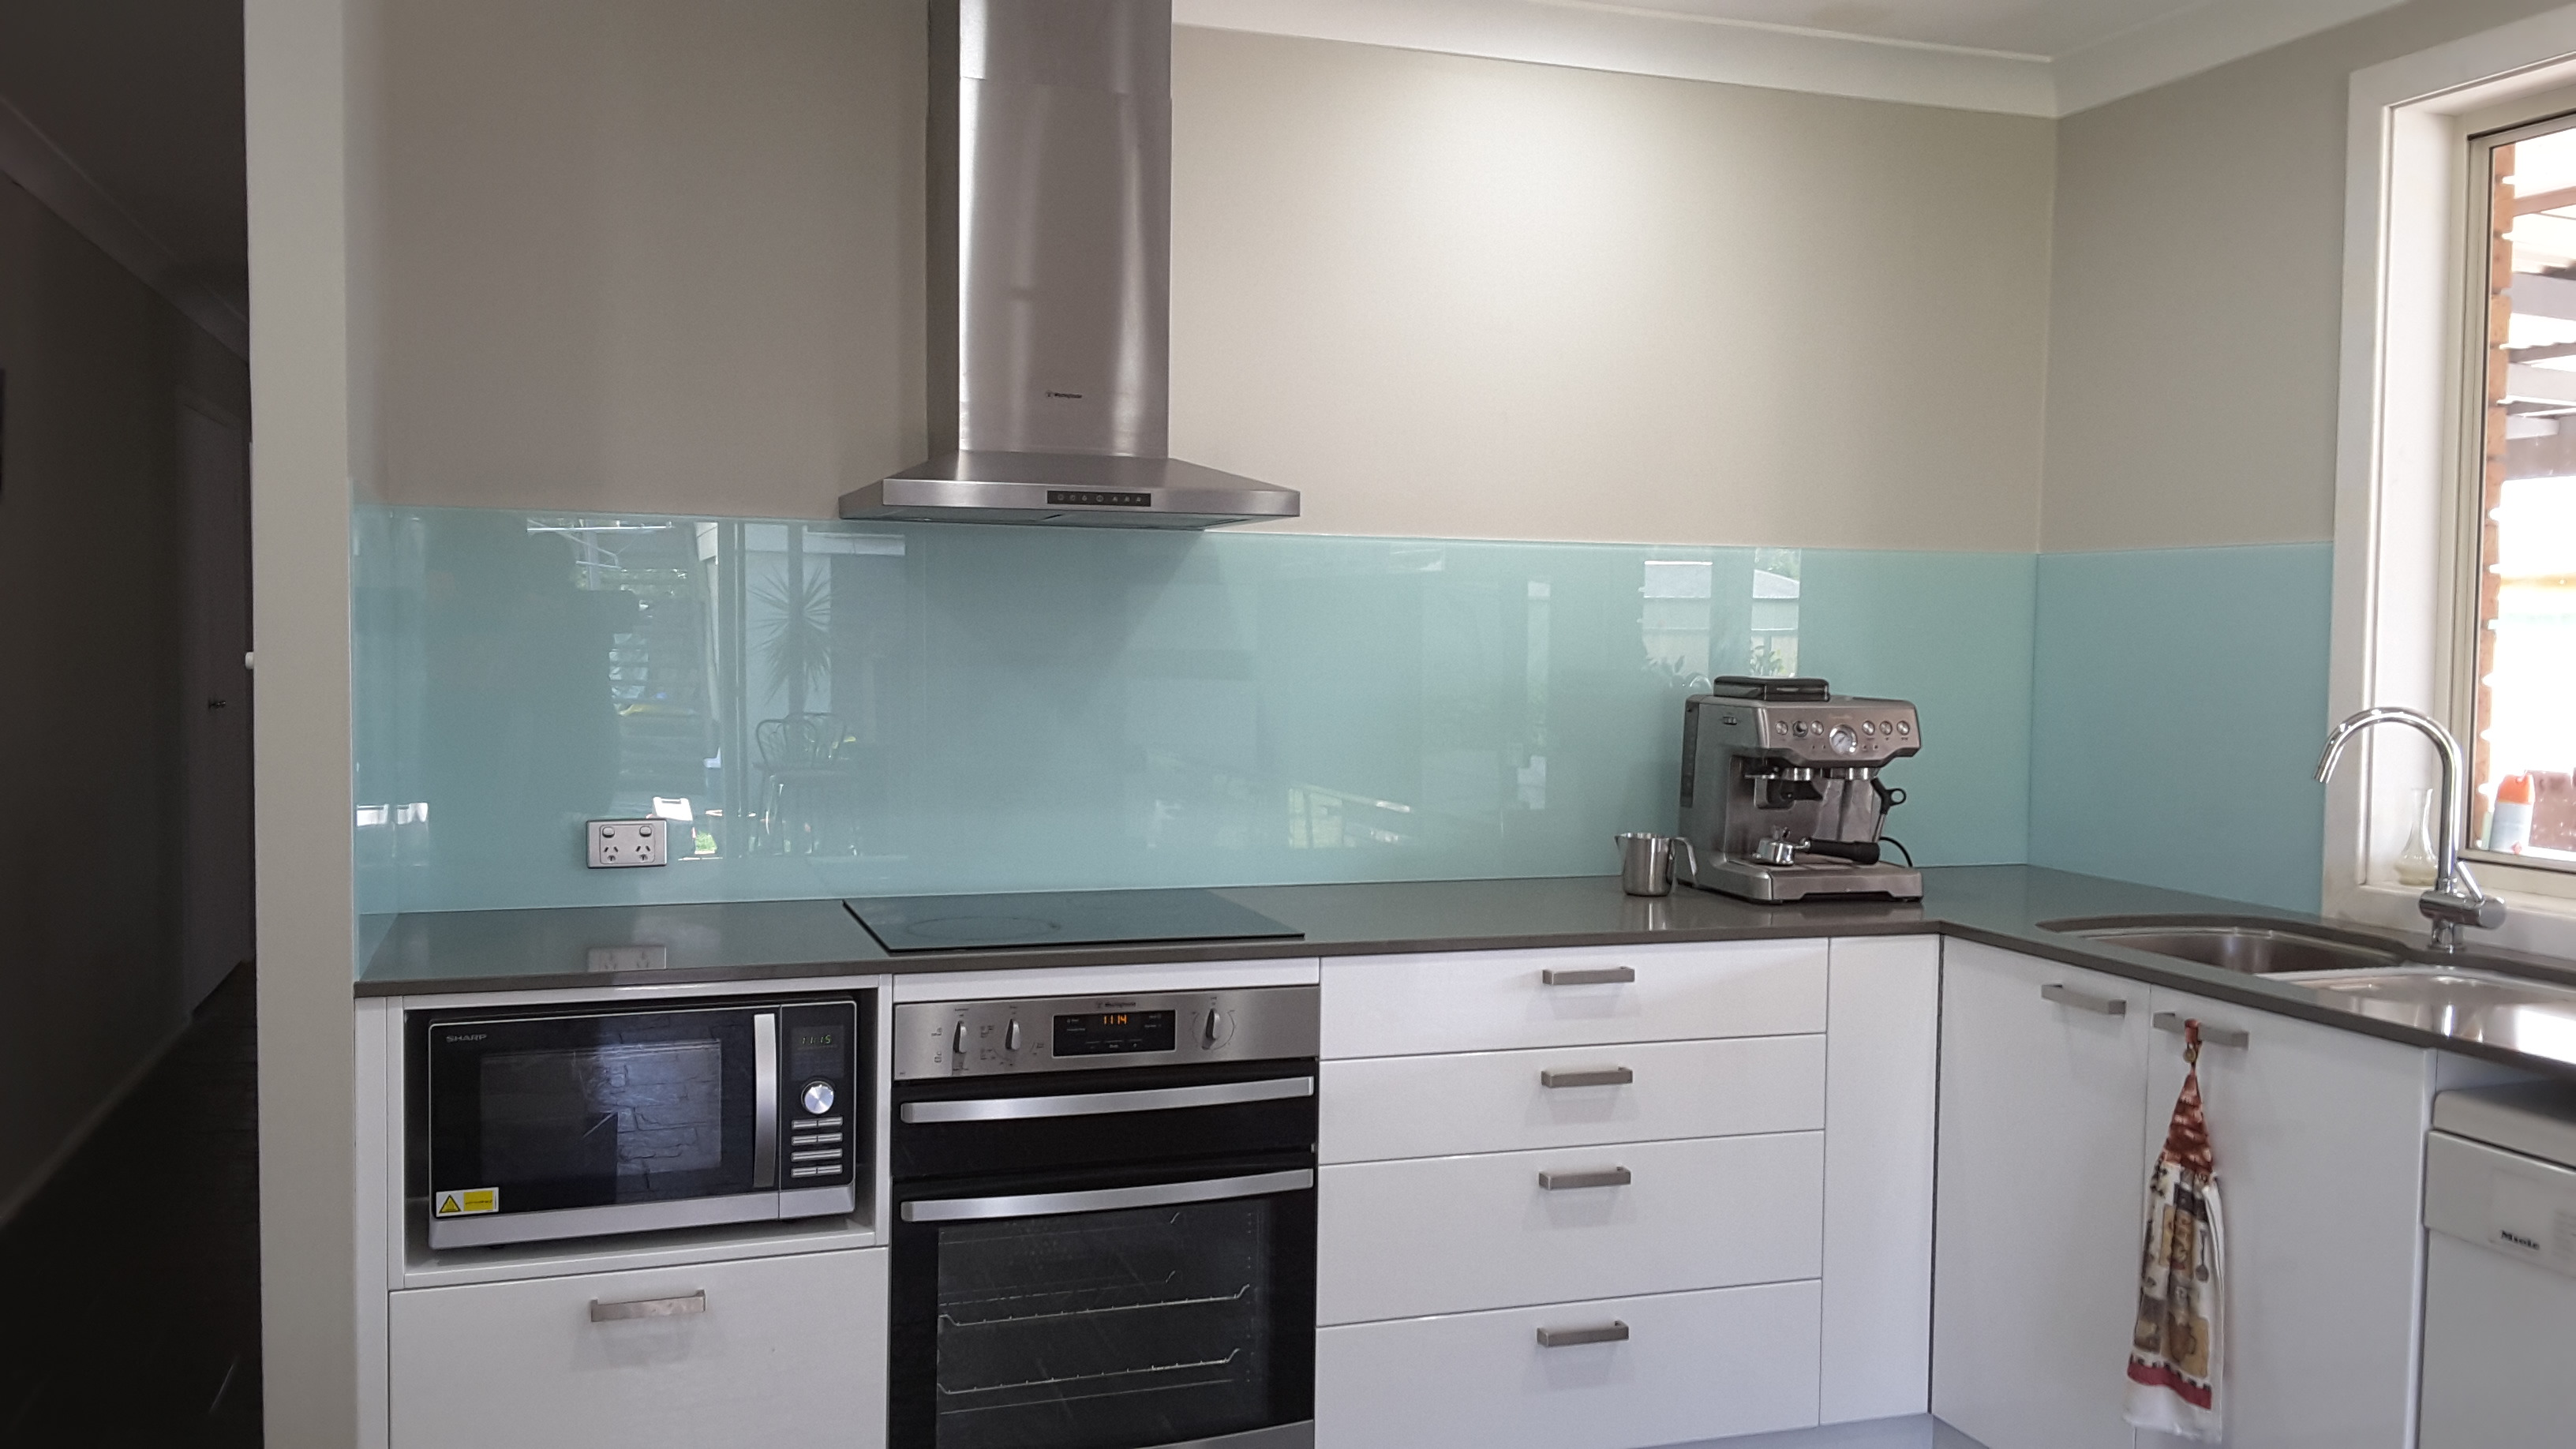 Kitchen Splashbacks : Before & After Photos – OzzieSplash Pty.Ltd